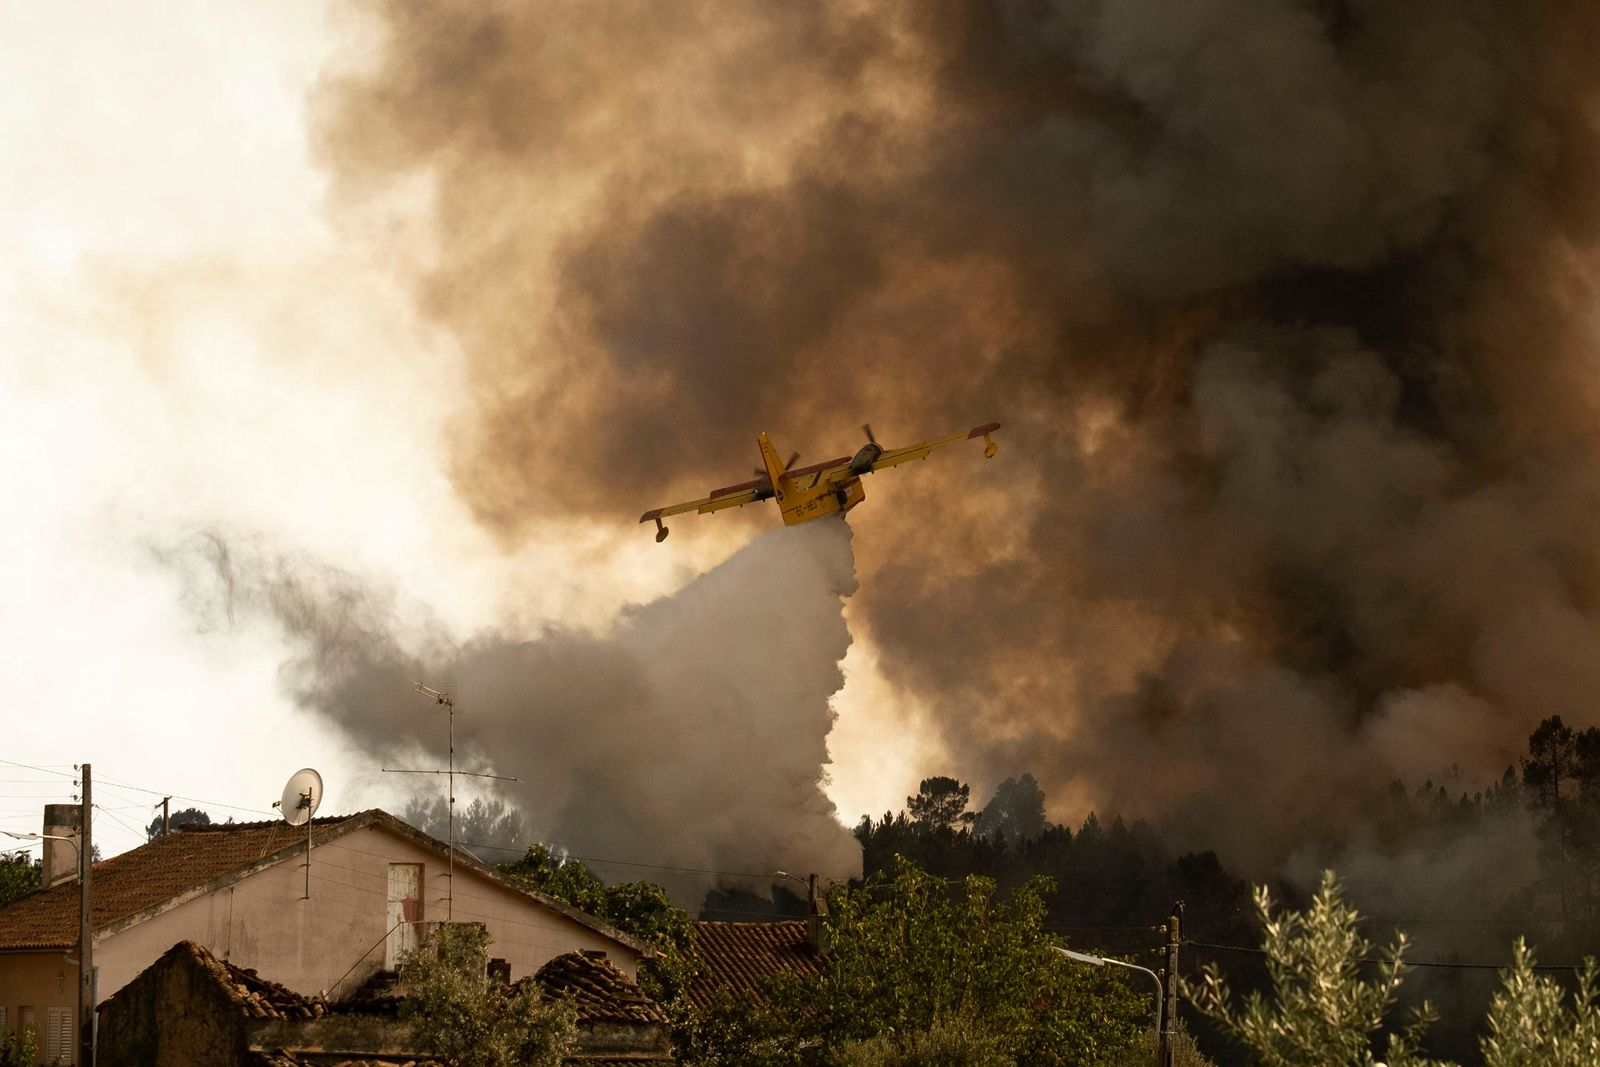 An airplane operates over a fire at the village of Chaveira, near Macao, in central Portugal on Monday, July 22, 2019 (AP Photo/Sergio Azenha)